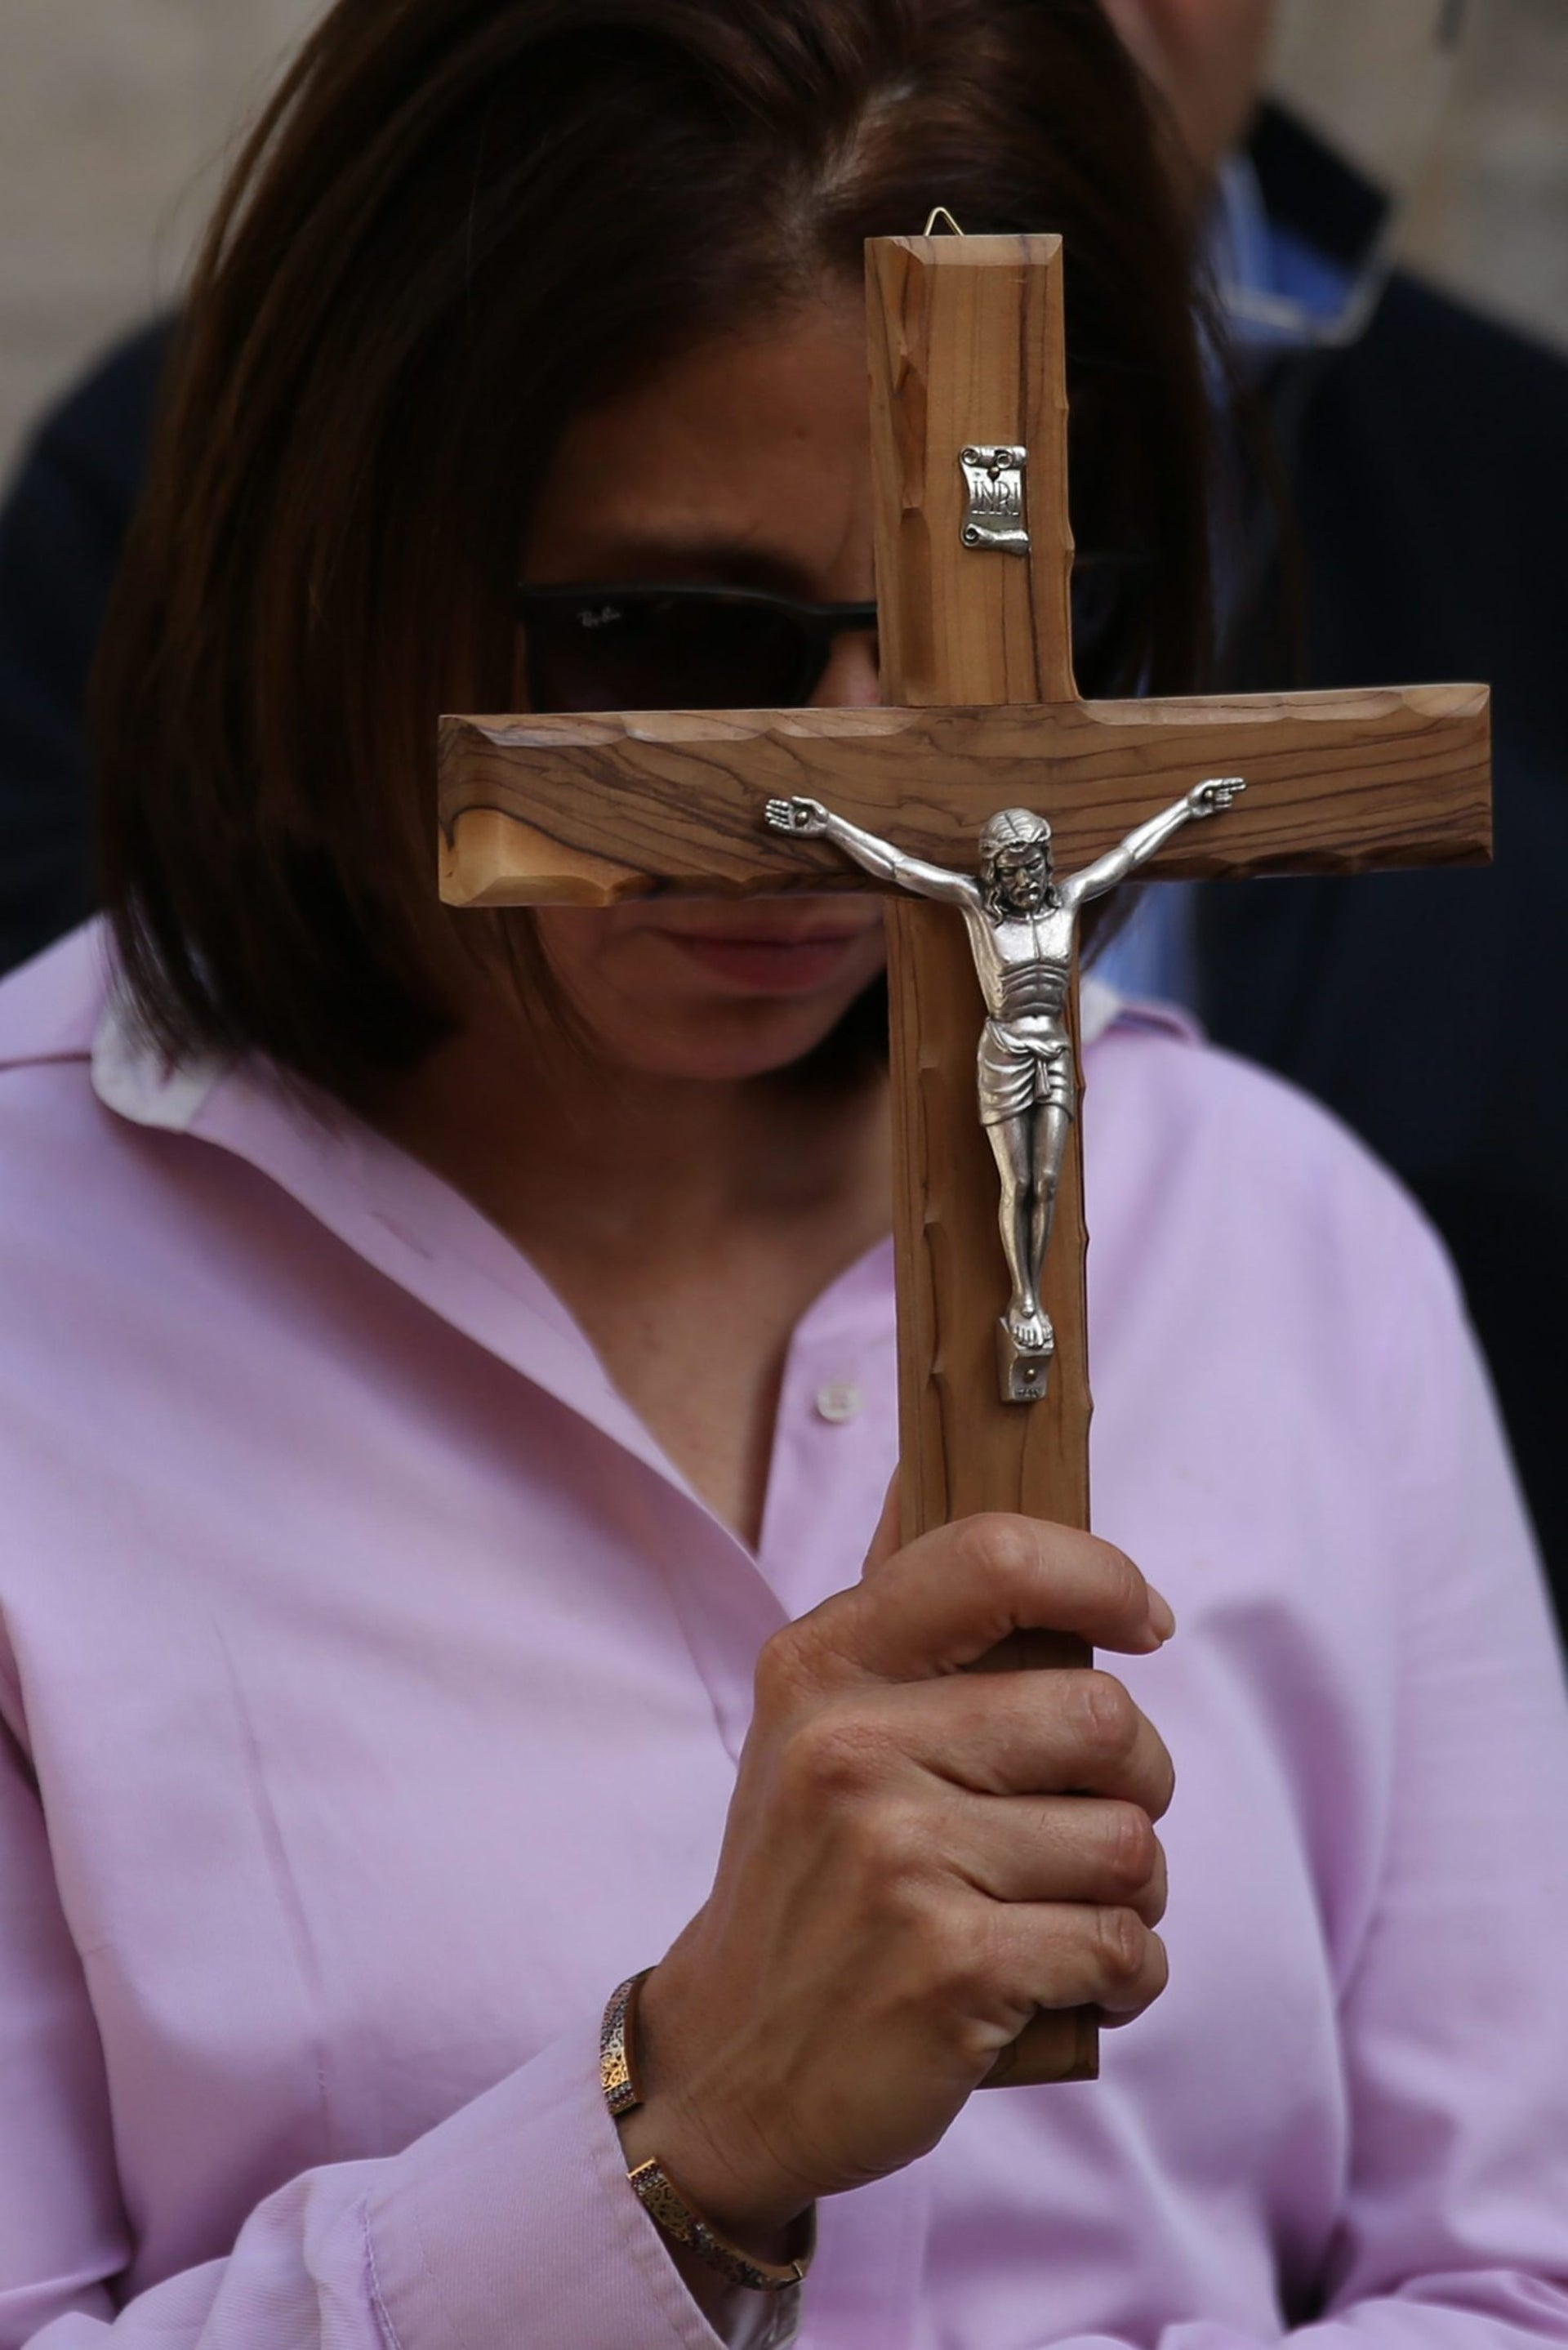 A Catholic pilgrim holds a crucifix as she prays along the Via Dolorosa (Way of Suffering) in Jerusalem's Old City during the Good Friday procession on March 25, 2016.